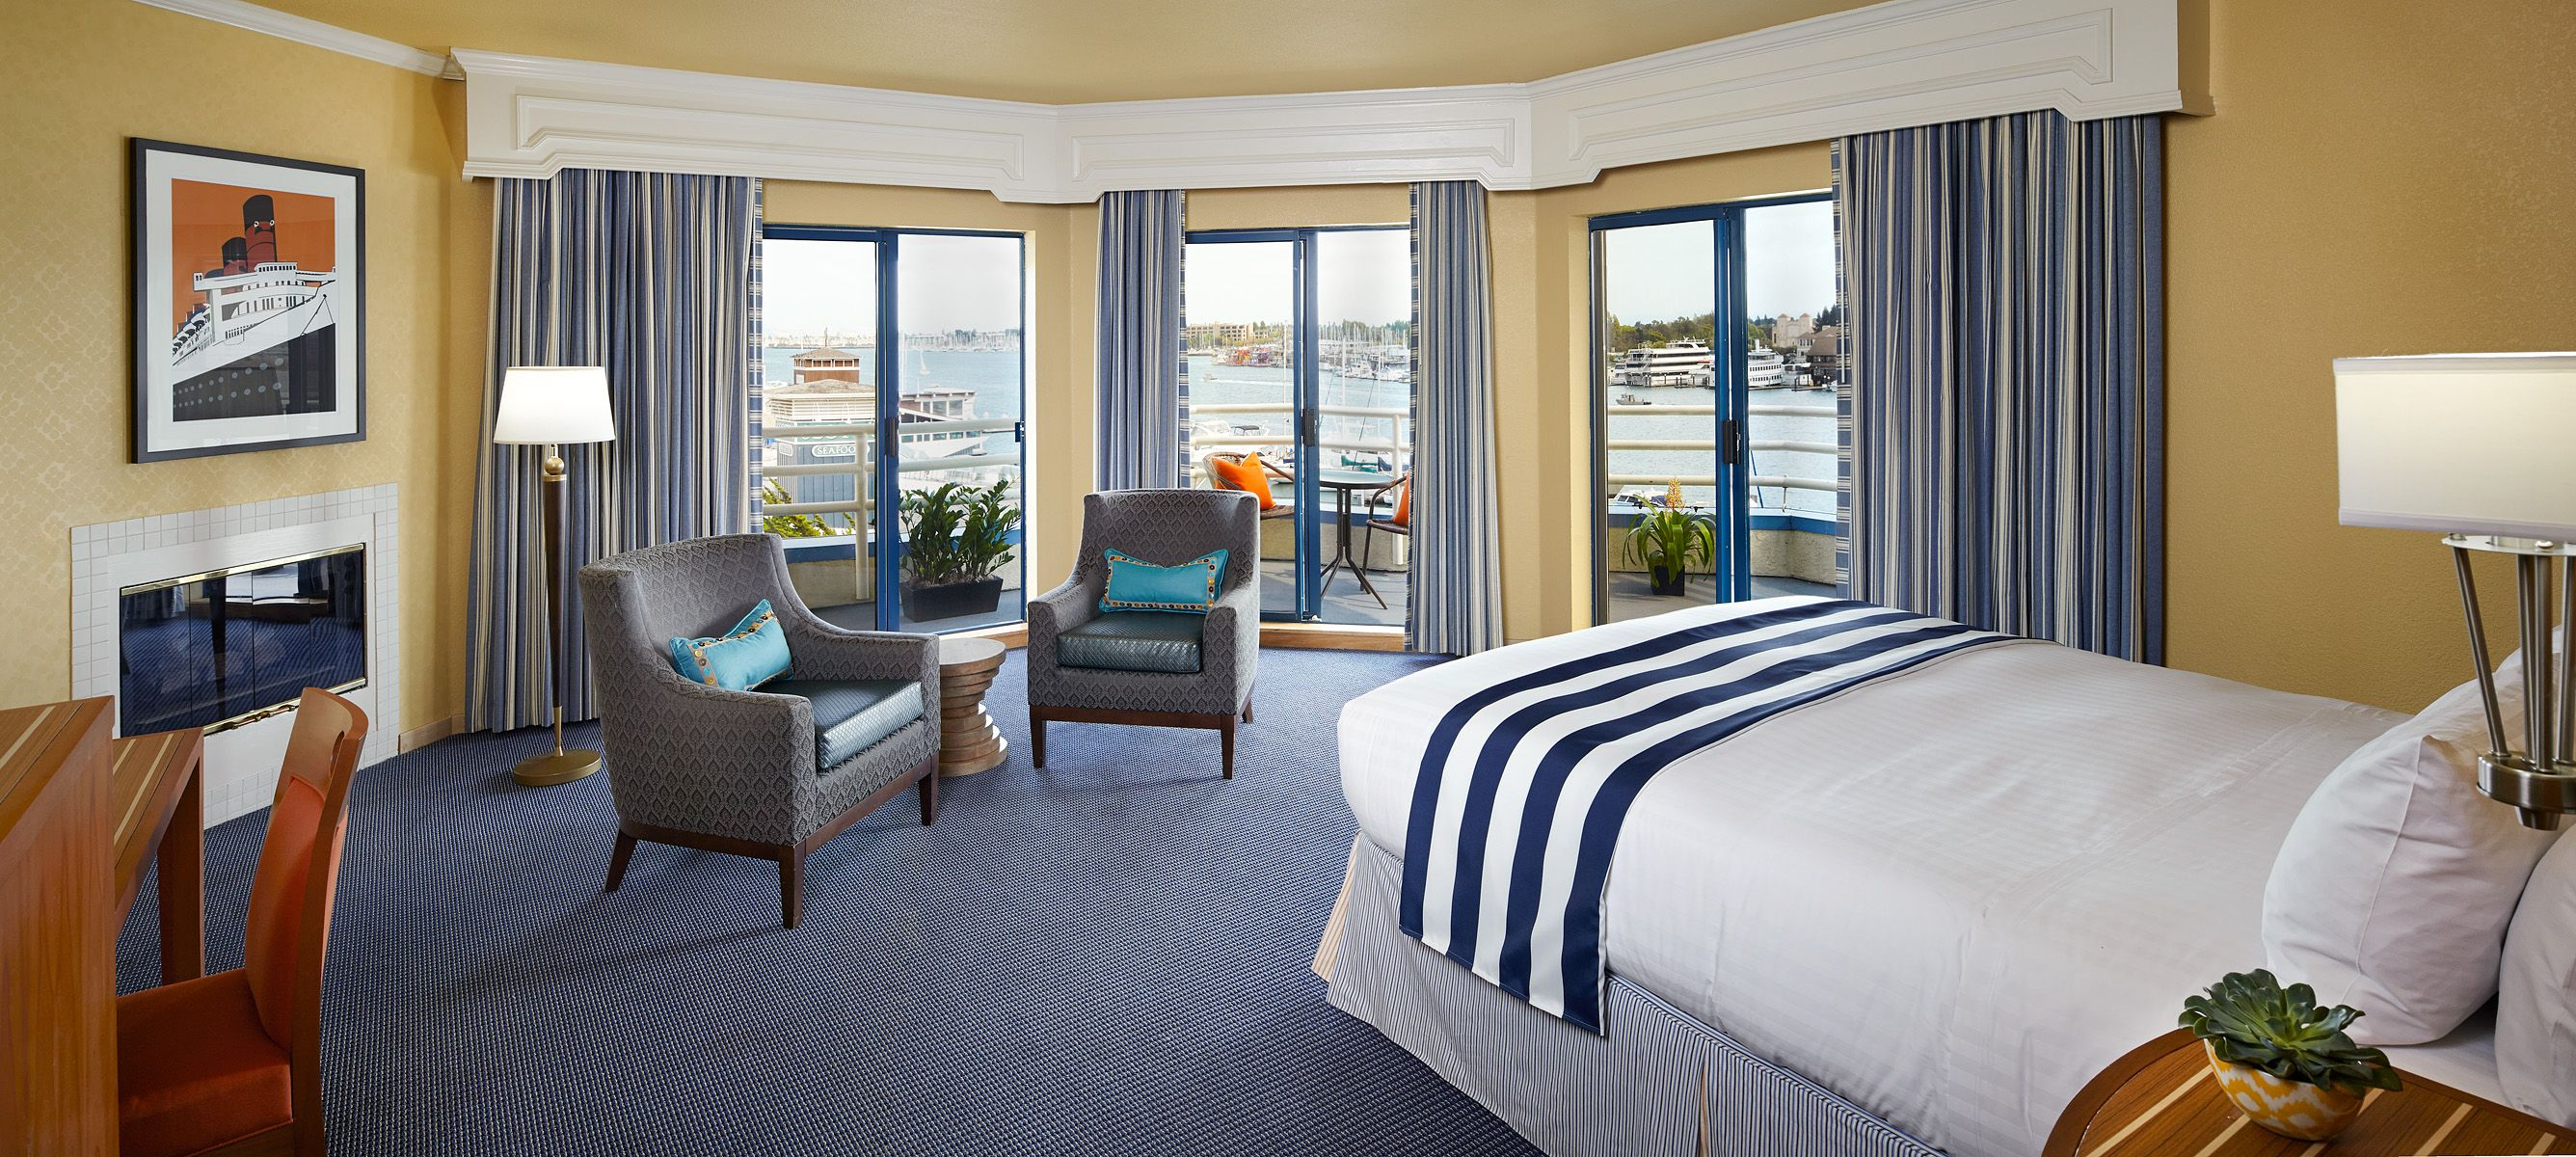 The Waterfront Bay View Suite at Waterfront Hotel features